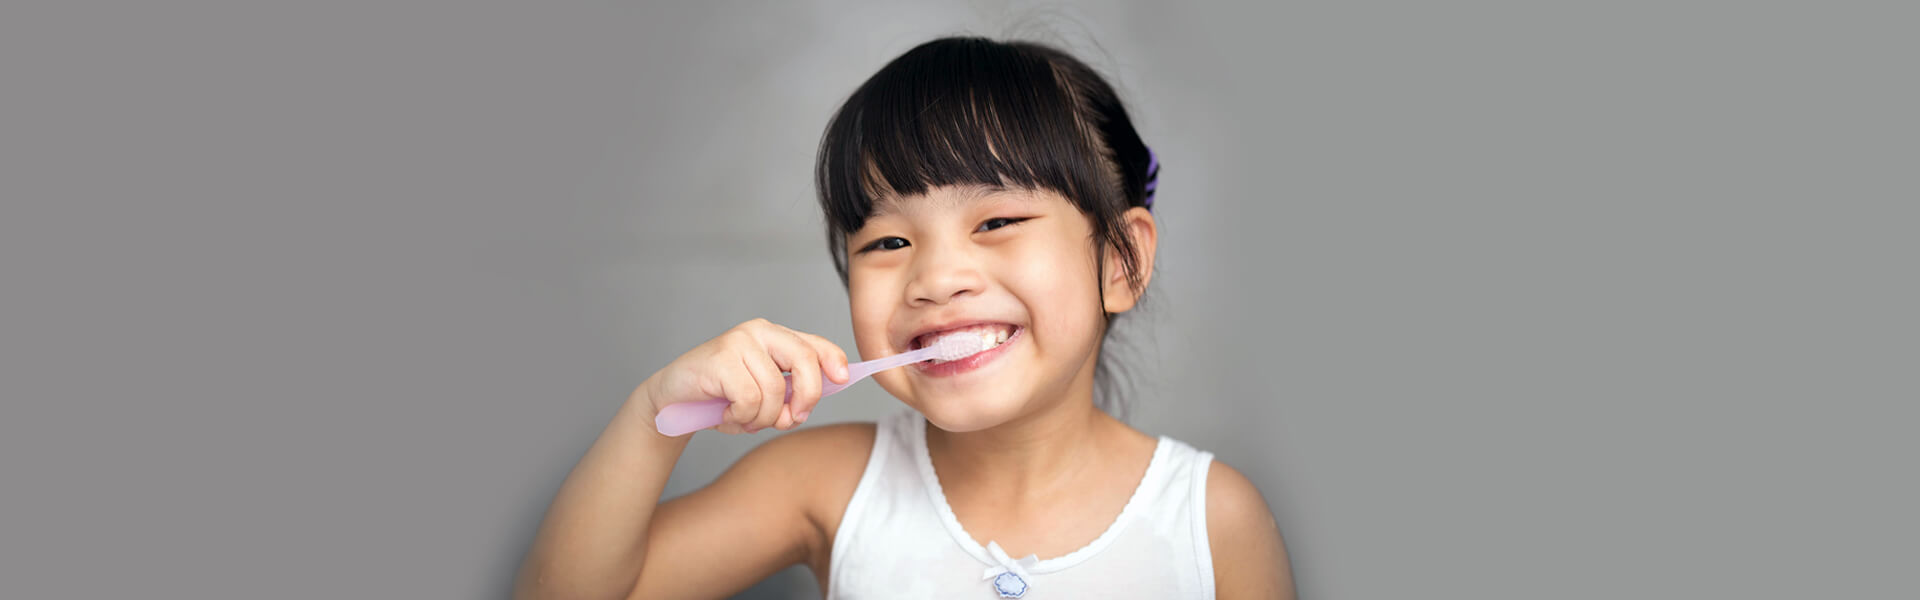 Important Brushing Techniques to Teach Your Child